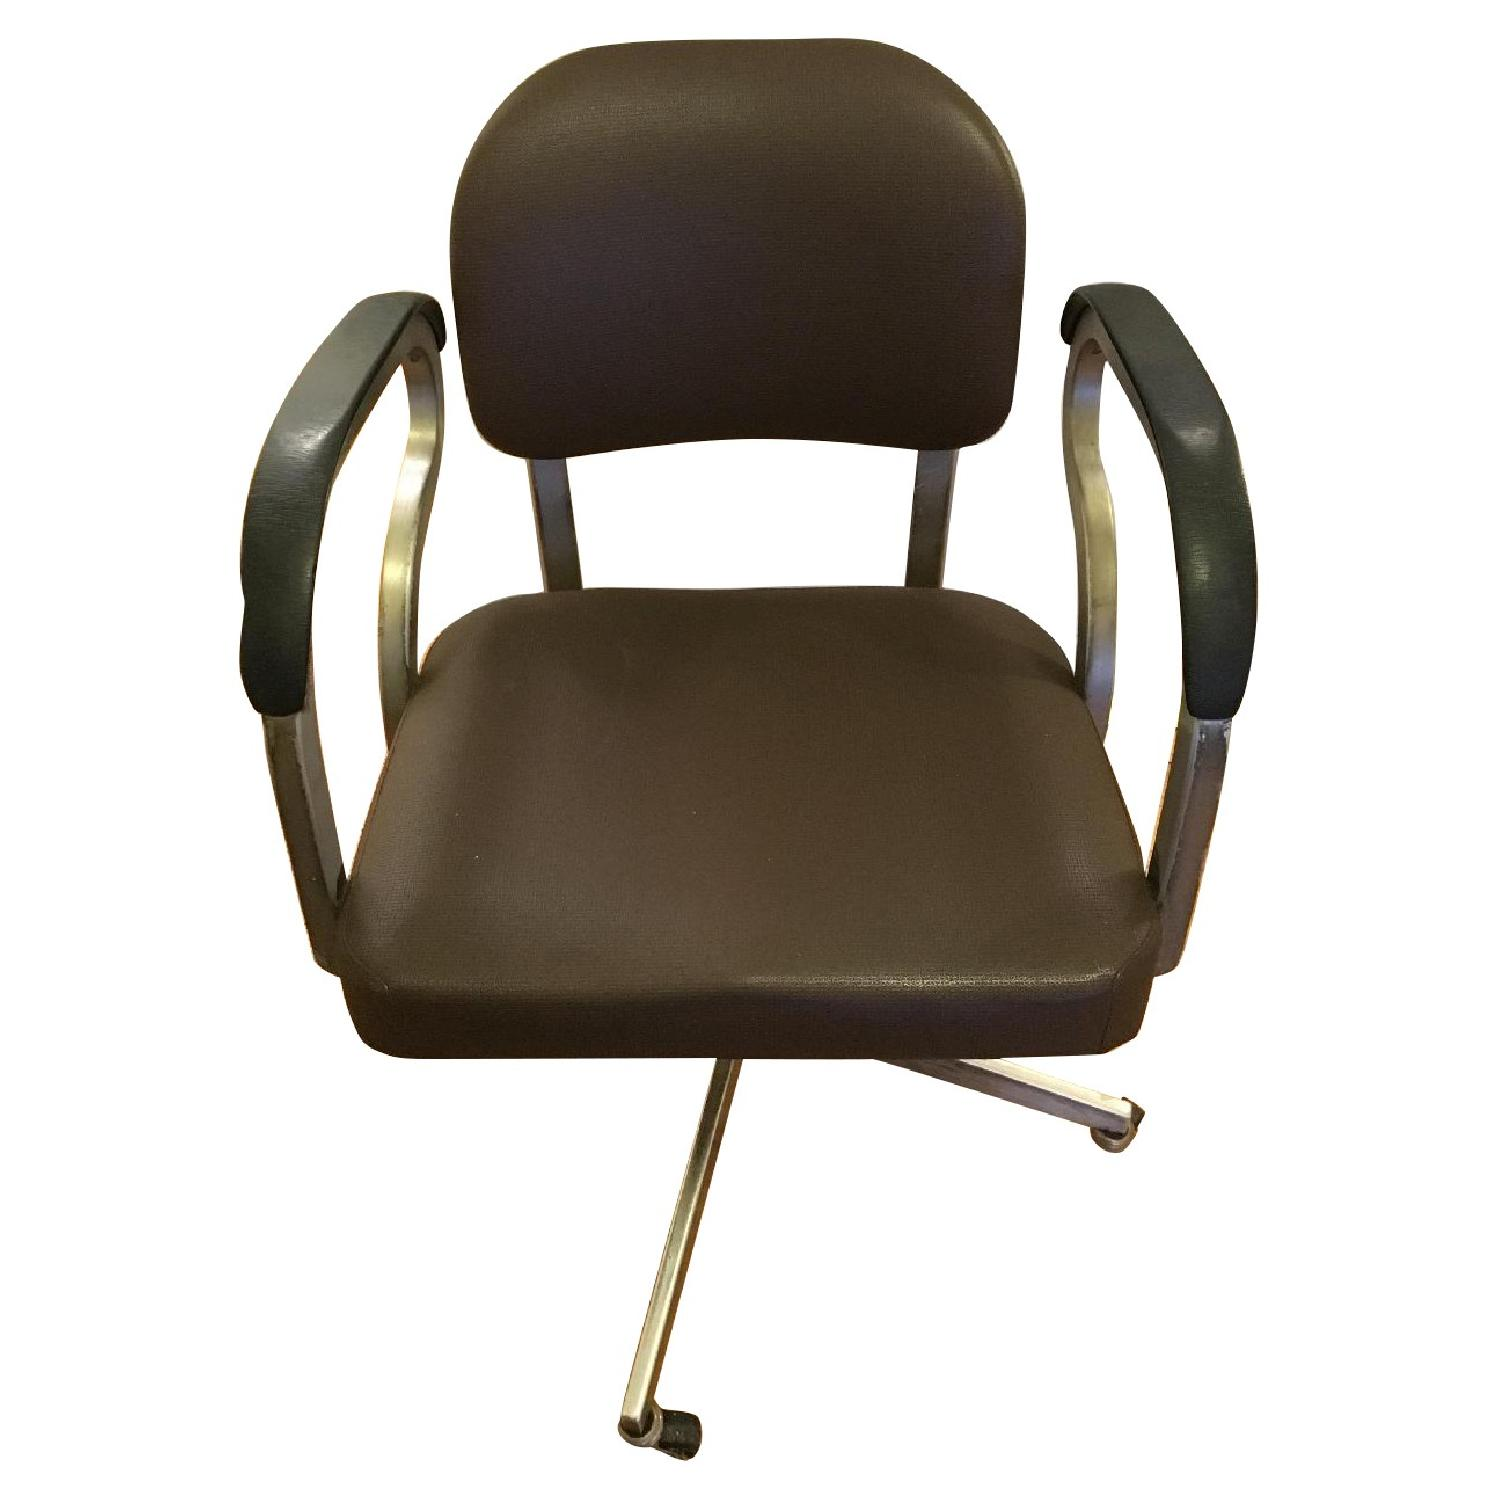 Goodform Vintage Rolling Office Chair w/ Adjustable Height